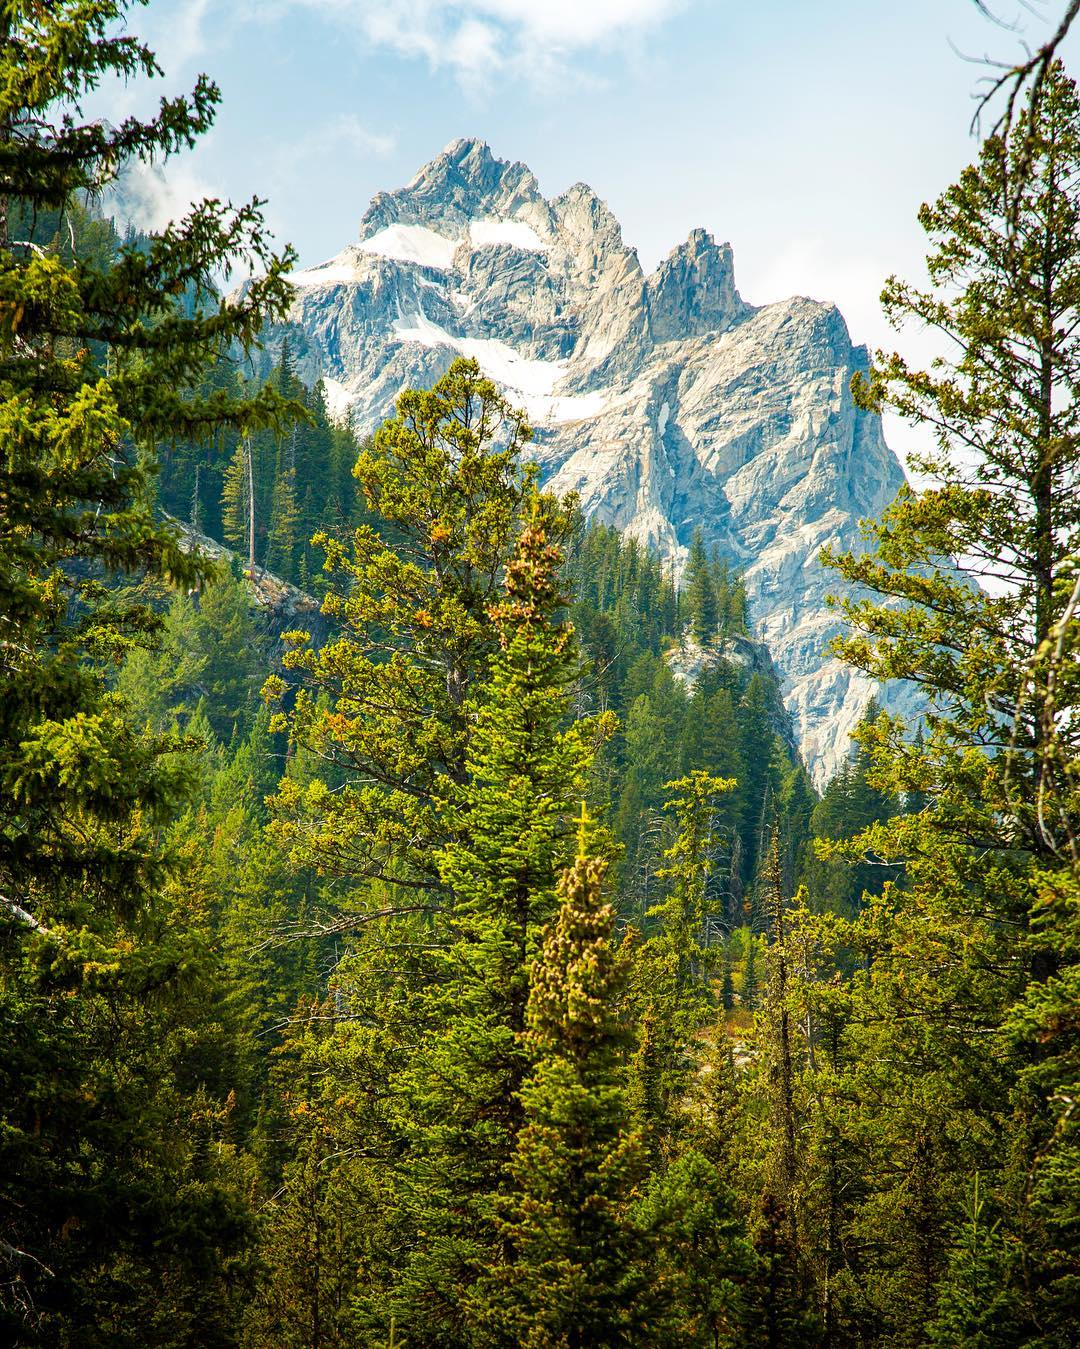 """We spent a few days camping with family and friends in Grand Teton National Park and visiting the usual hot spots of Yellowstone. Amazing campfire dinners and early morning coffee were a delightful treat each day. On the way back home we dreamt of one..."